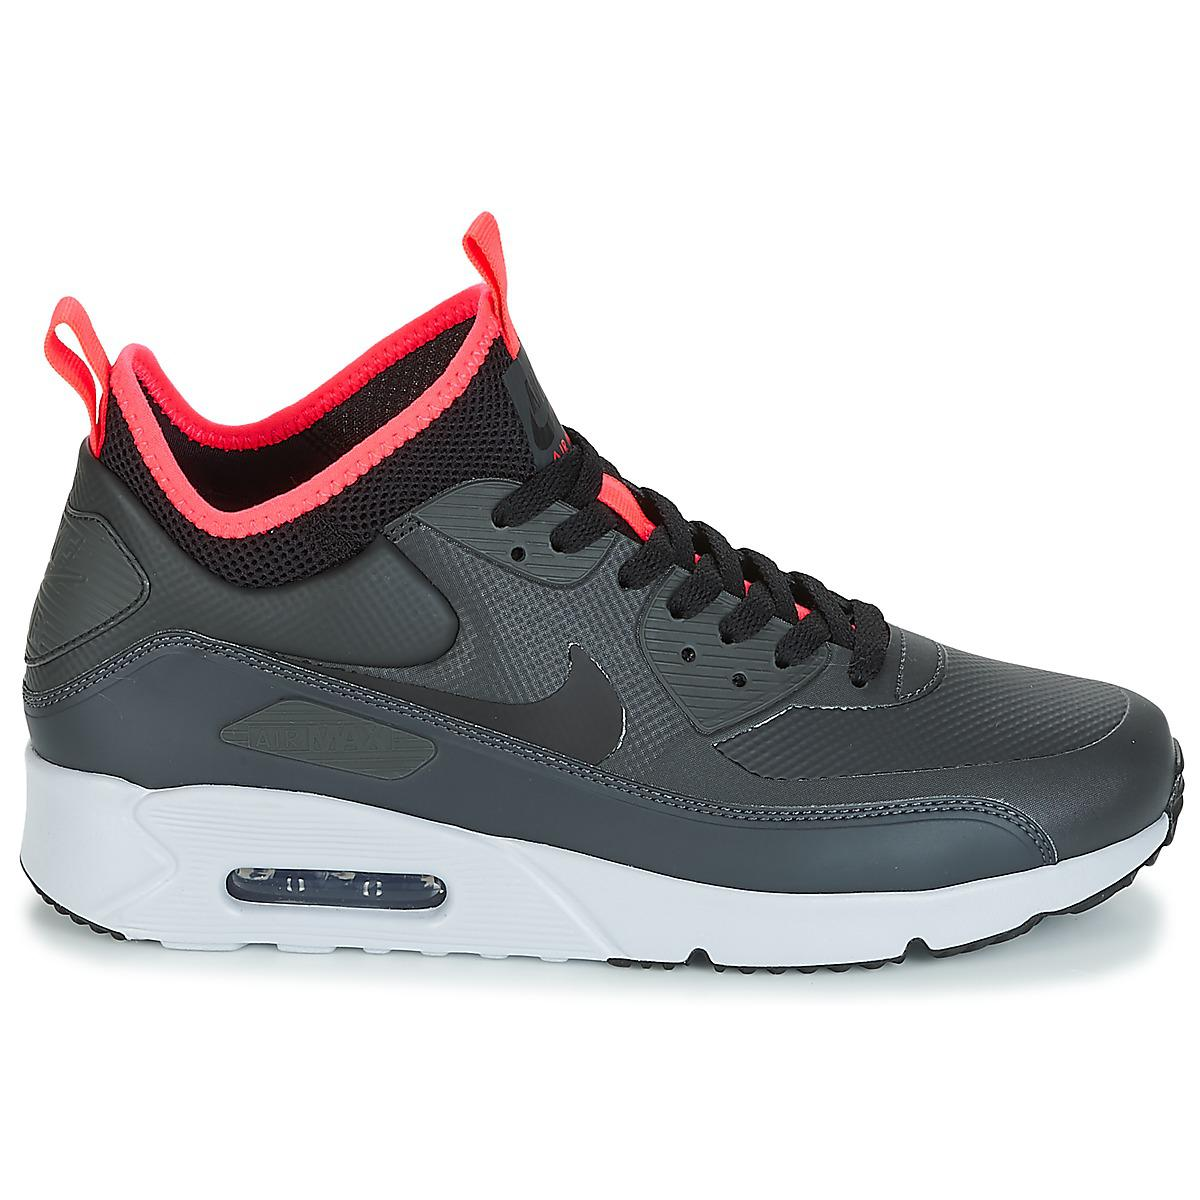 f0807f523d Nike - Gray Air Max 90 Ultra Mid Winter Men's Mid Boots In Grey for Men.  View fullscreen